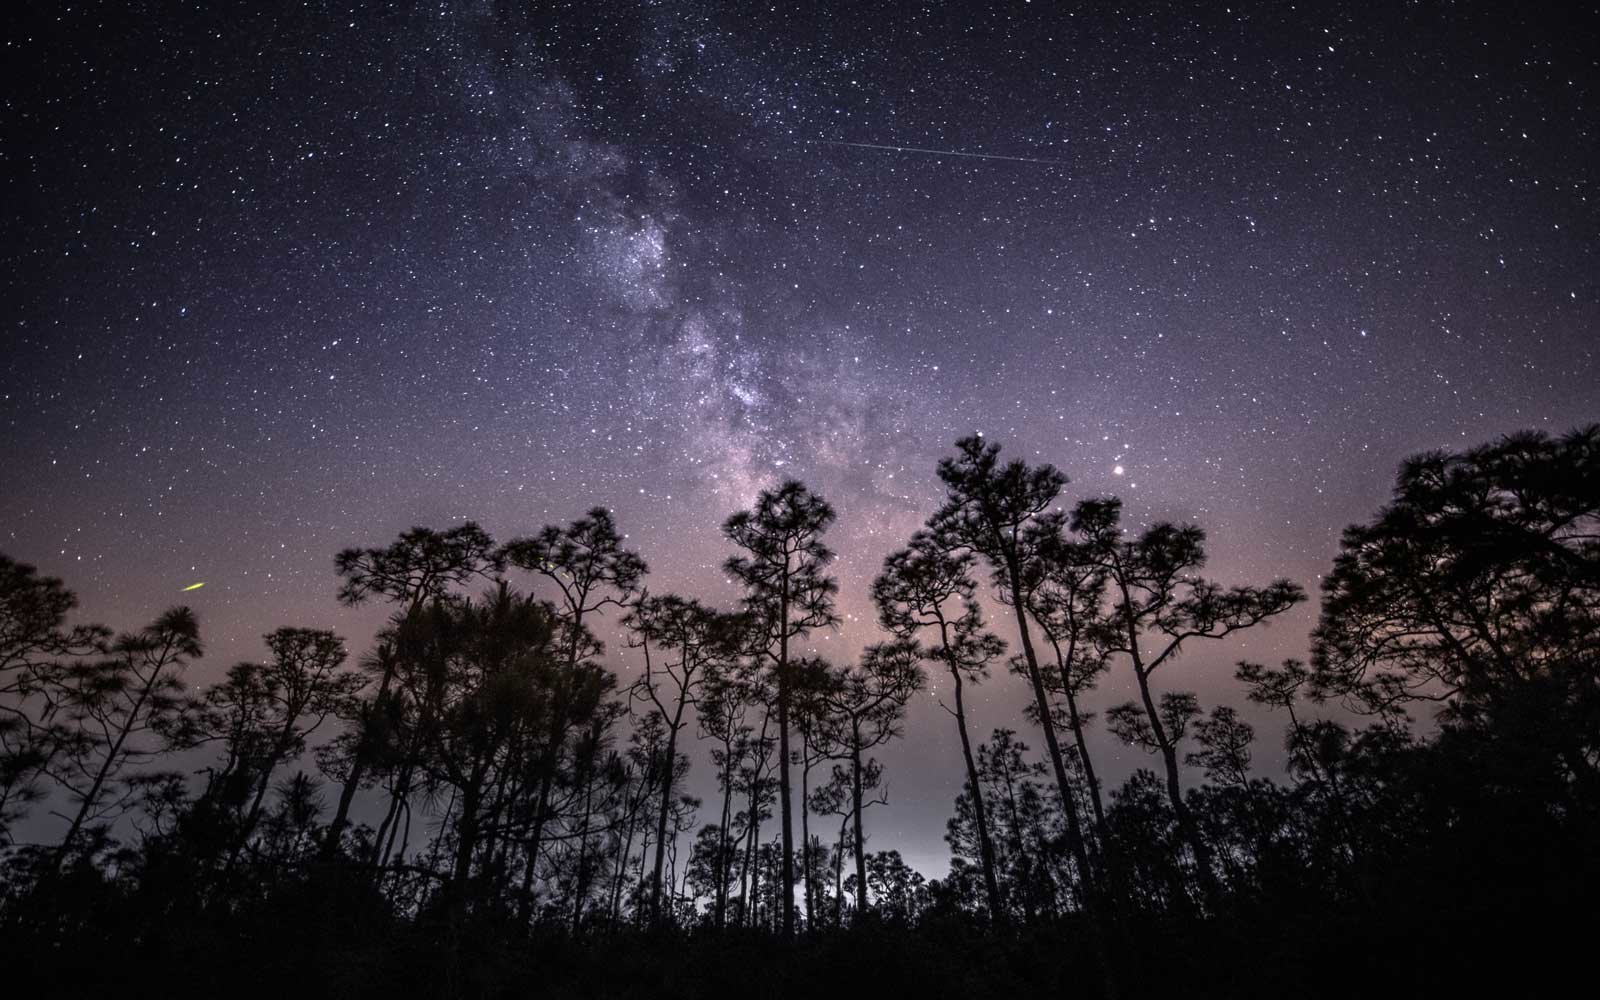 Eta Aquarid Meteor Shower, Babcock Wildlife Refuge, Florida